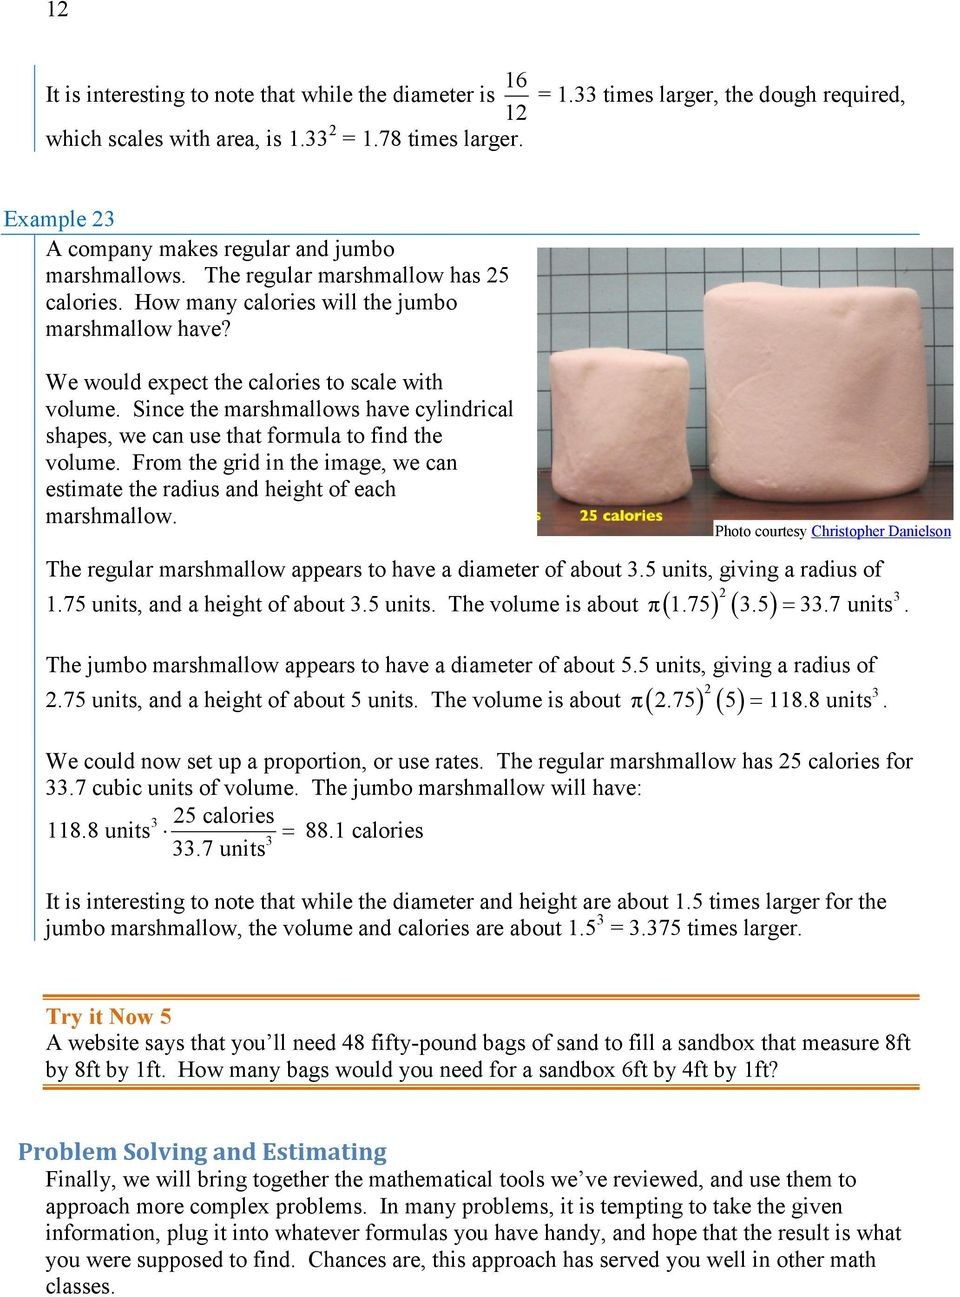 Since the marshmallows have cylindrical shapes, we can use that formula to find the volume. From the grid in the image, we can estimate the radius and height of each marshmallow.